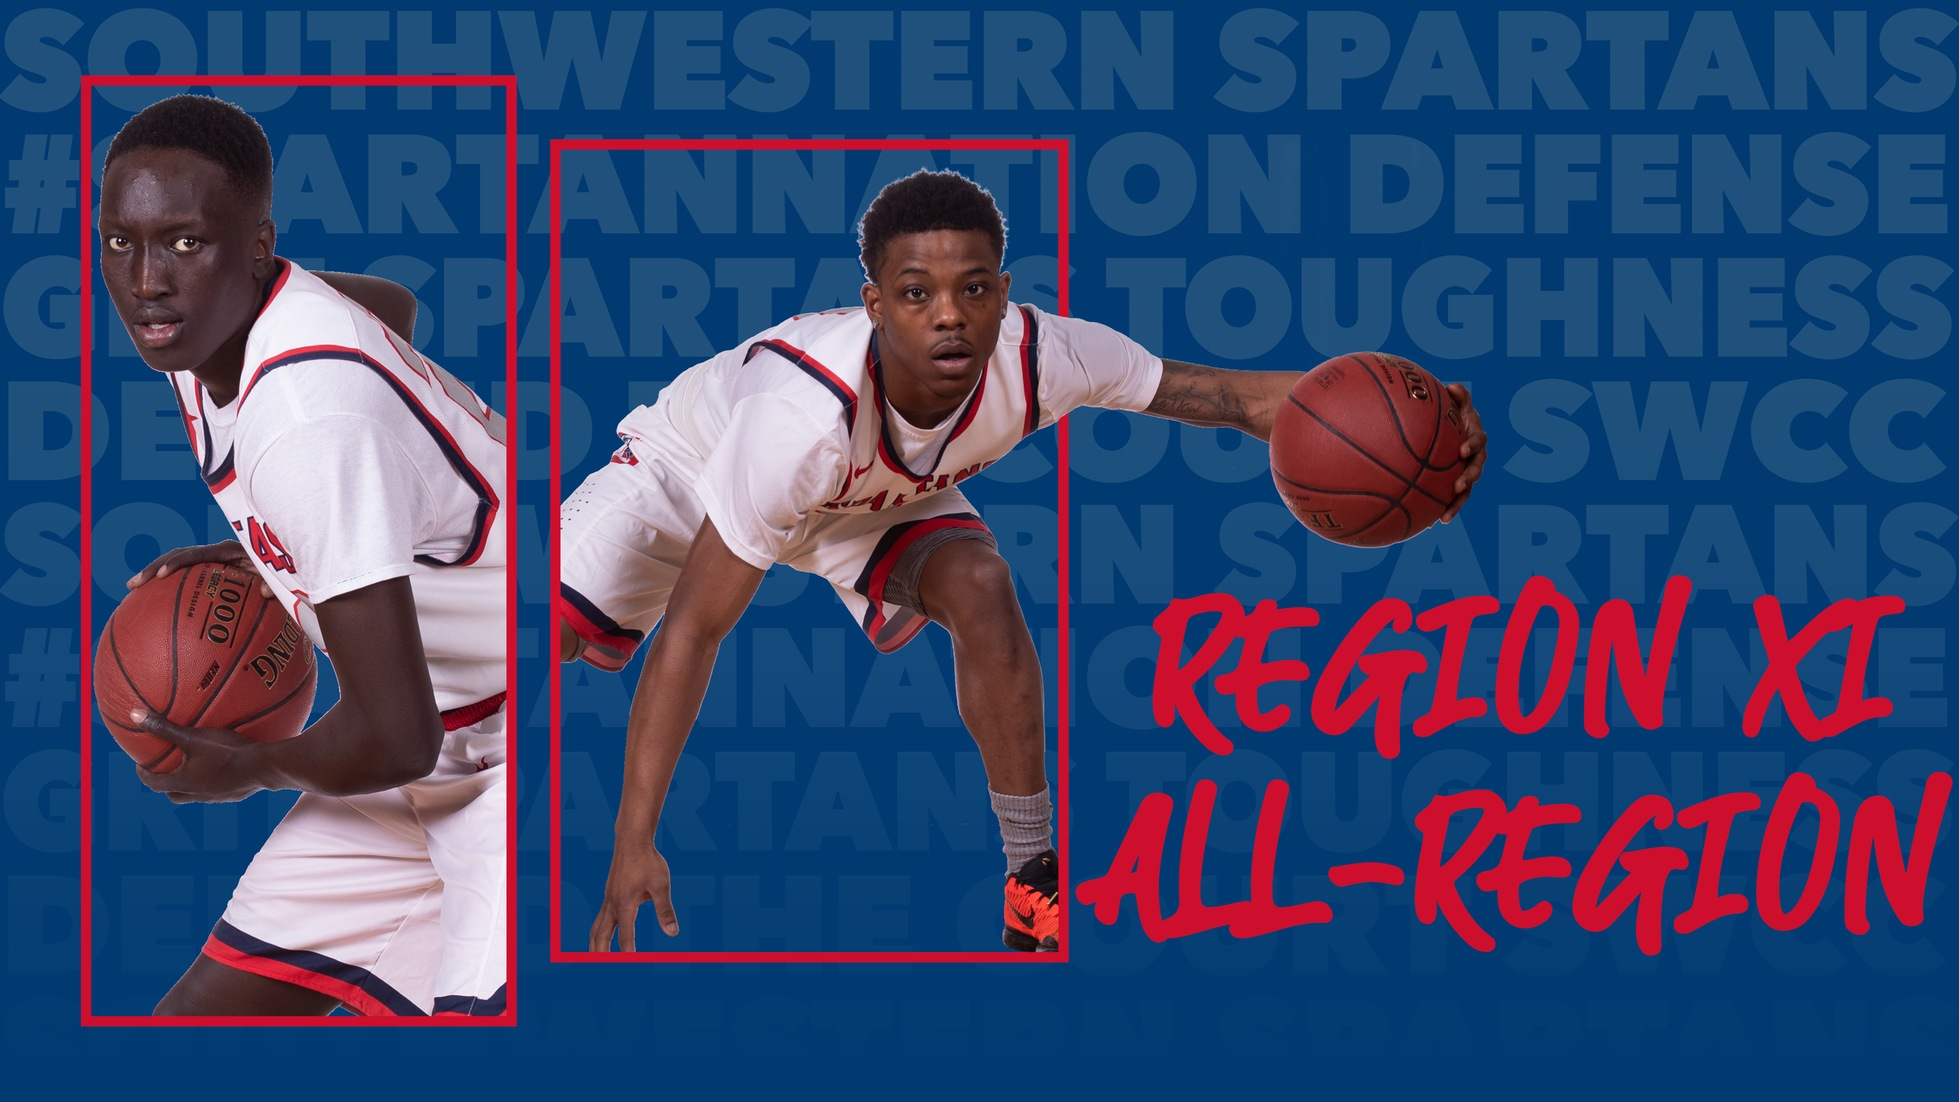 Ryan Warren and Gatdoar Kueth were named to the Region XI Division II men's basketball all-region teams.